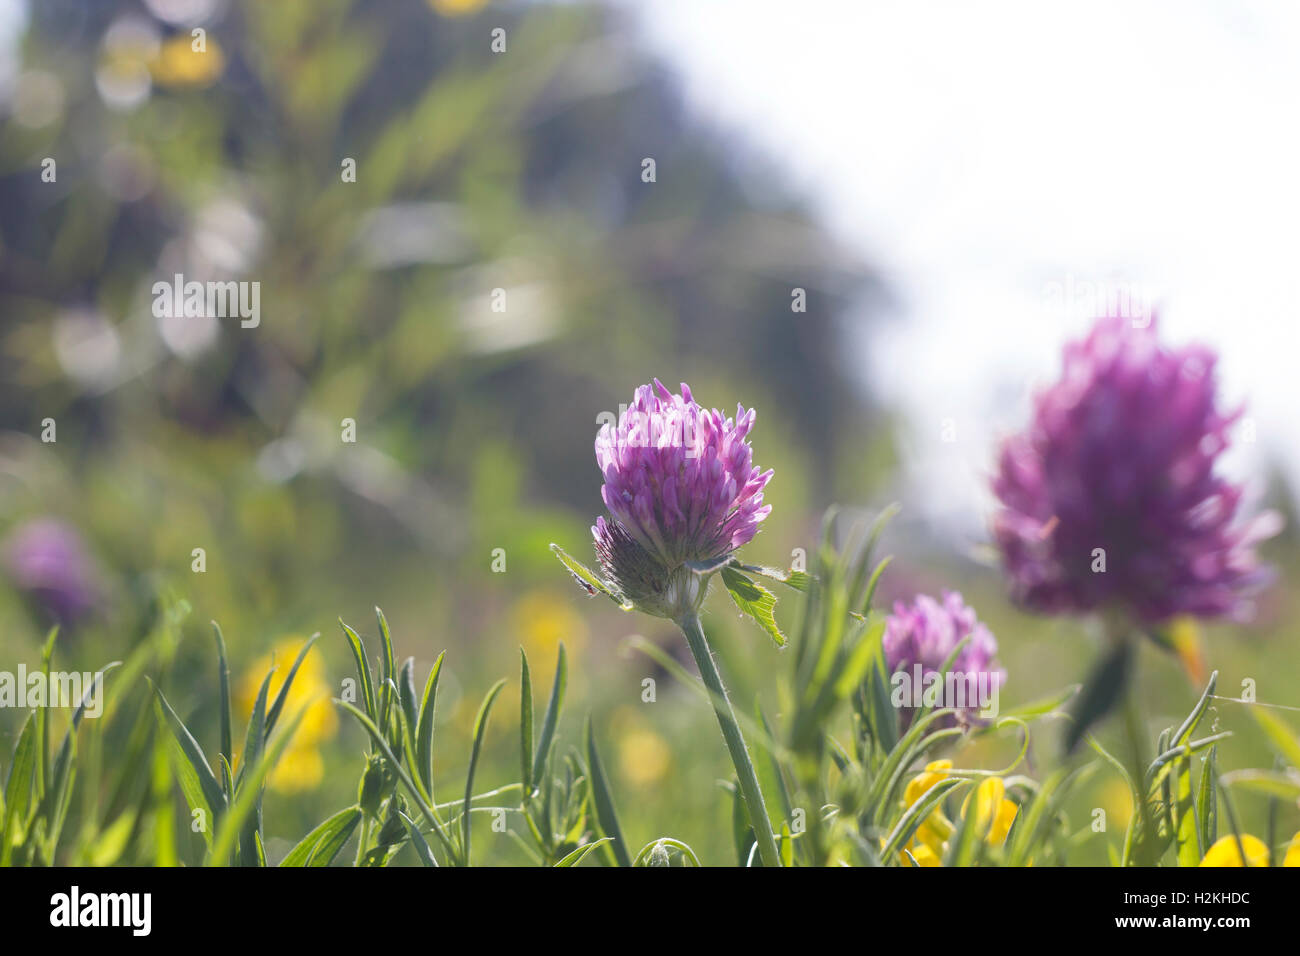 Summer Field With Yellow And Pink Flowers Clover Wild Meadow Pink